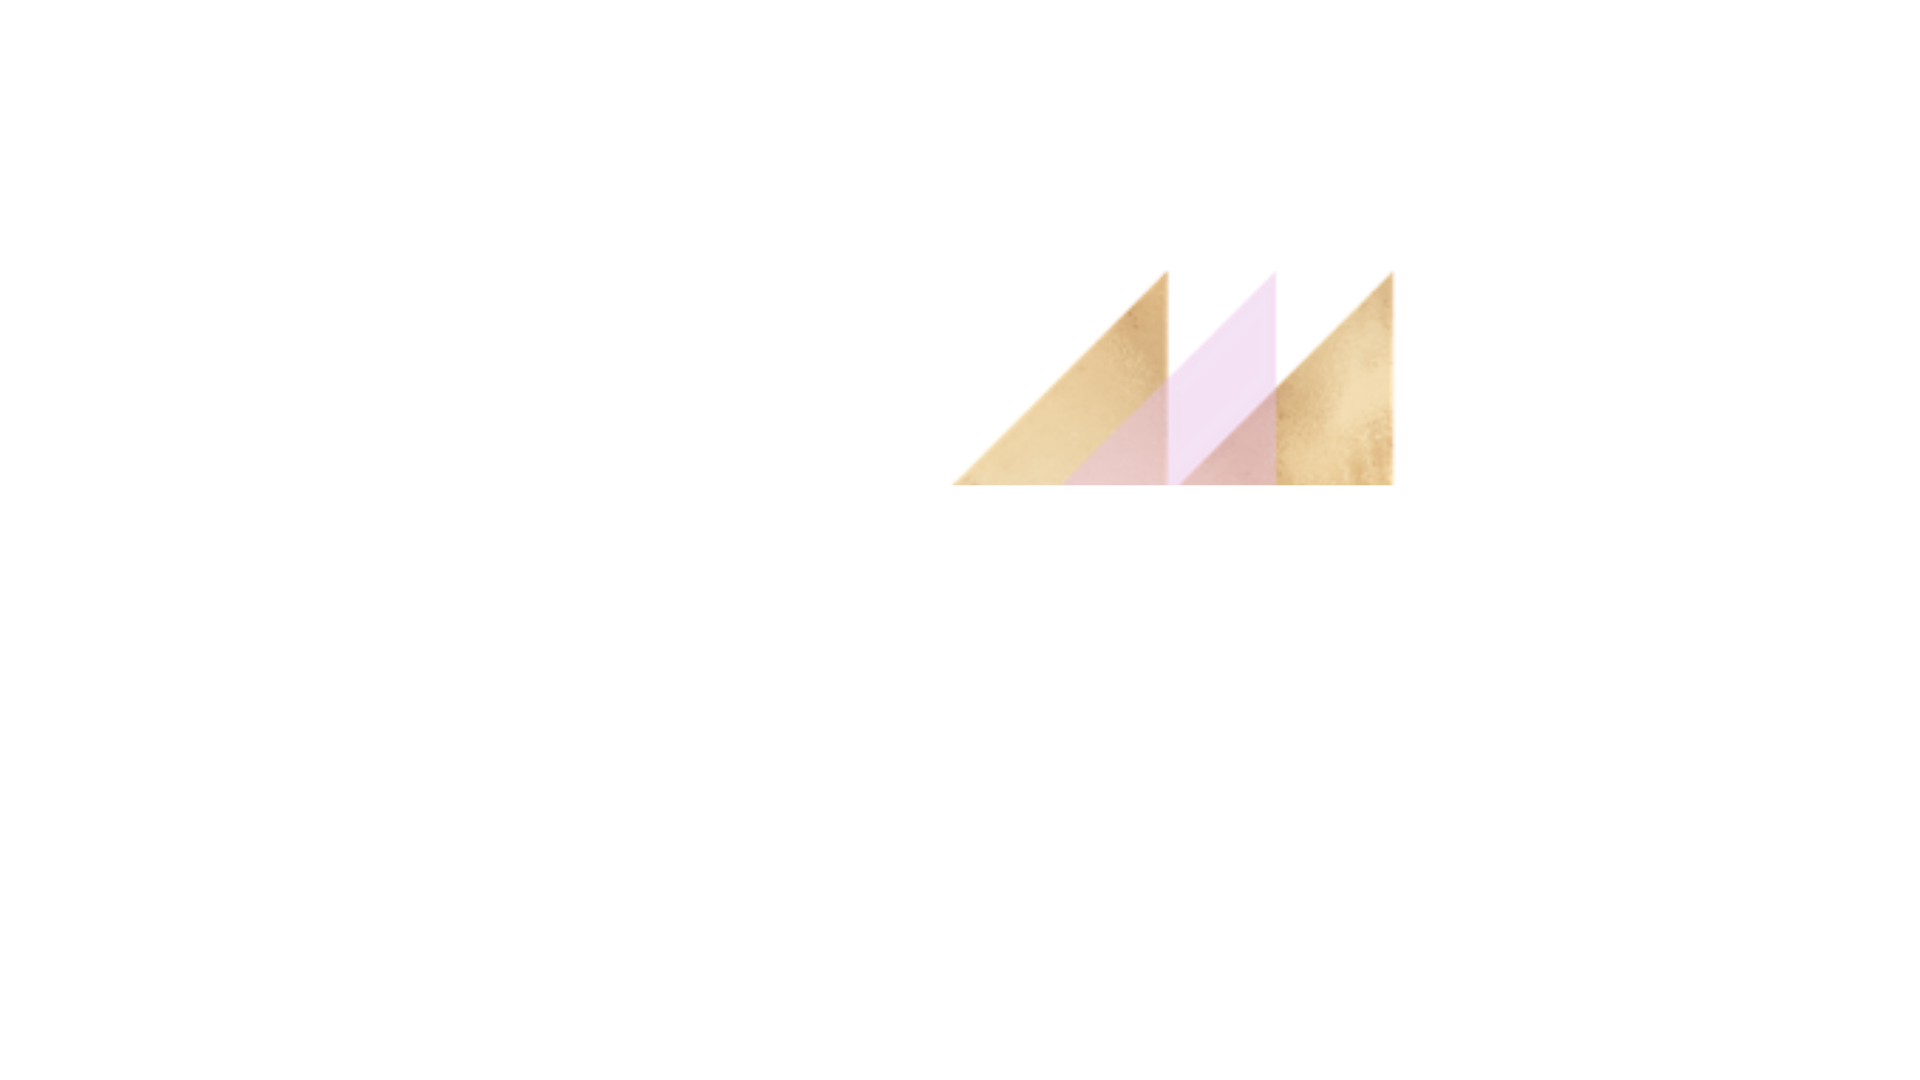 Geelong Social Media Logo